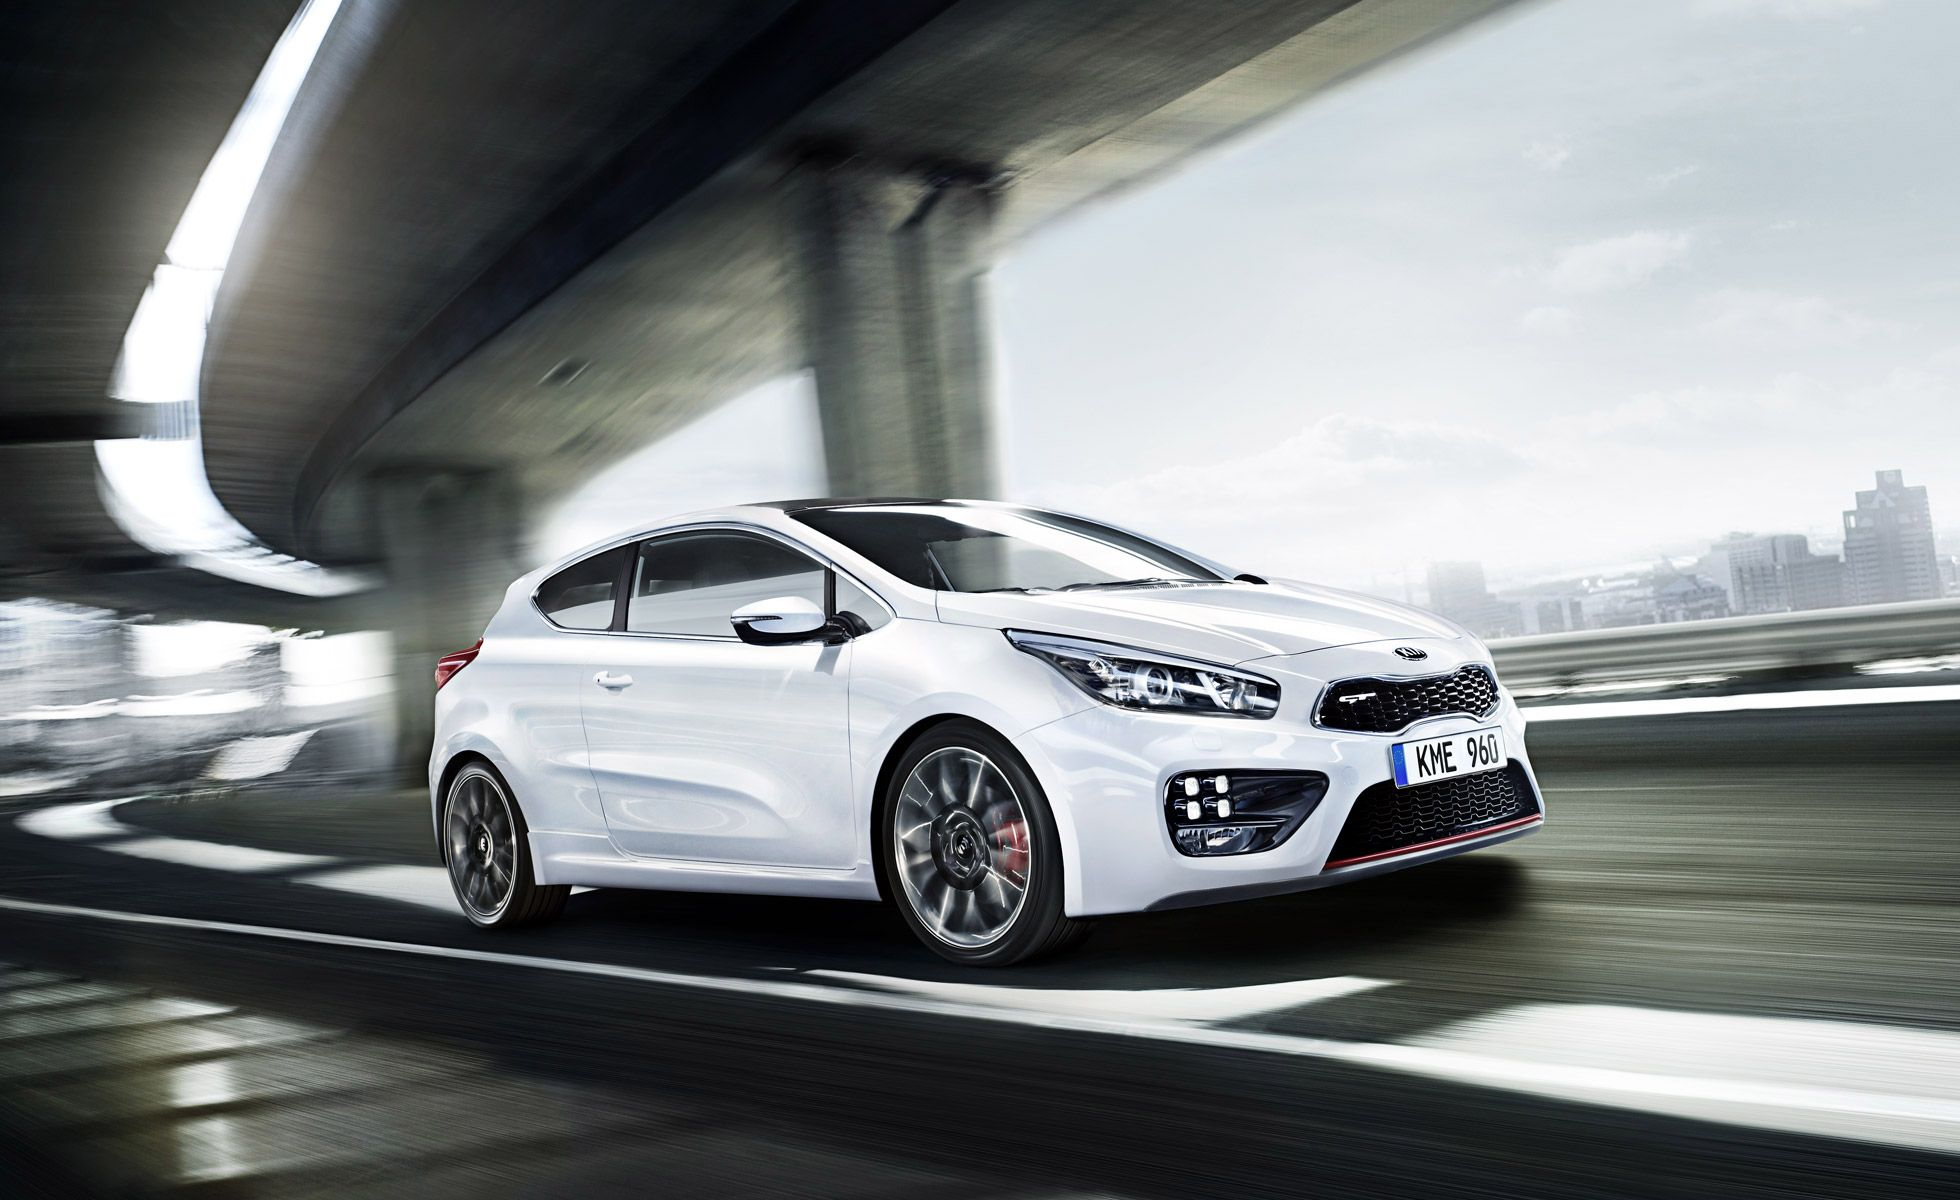 2014 kia pro ceed gt and cee d gt the brands most performance focused production cars ever can enjoy their world premieres for the 2013 geneva motor